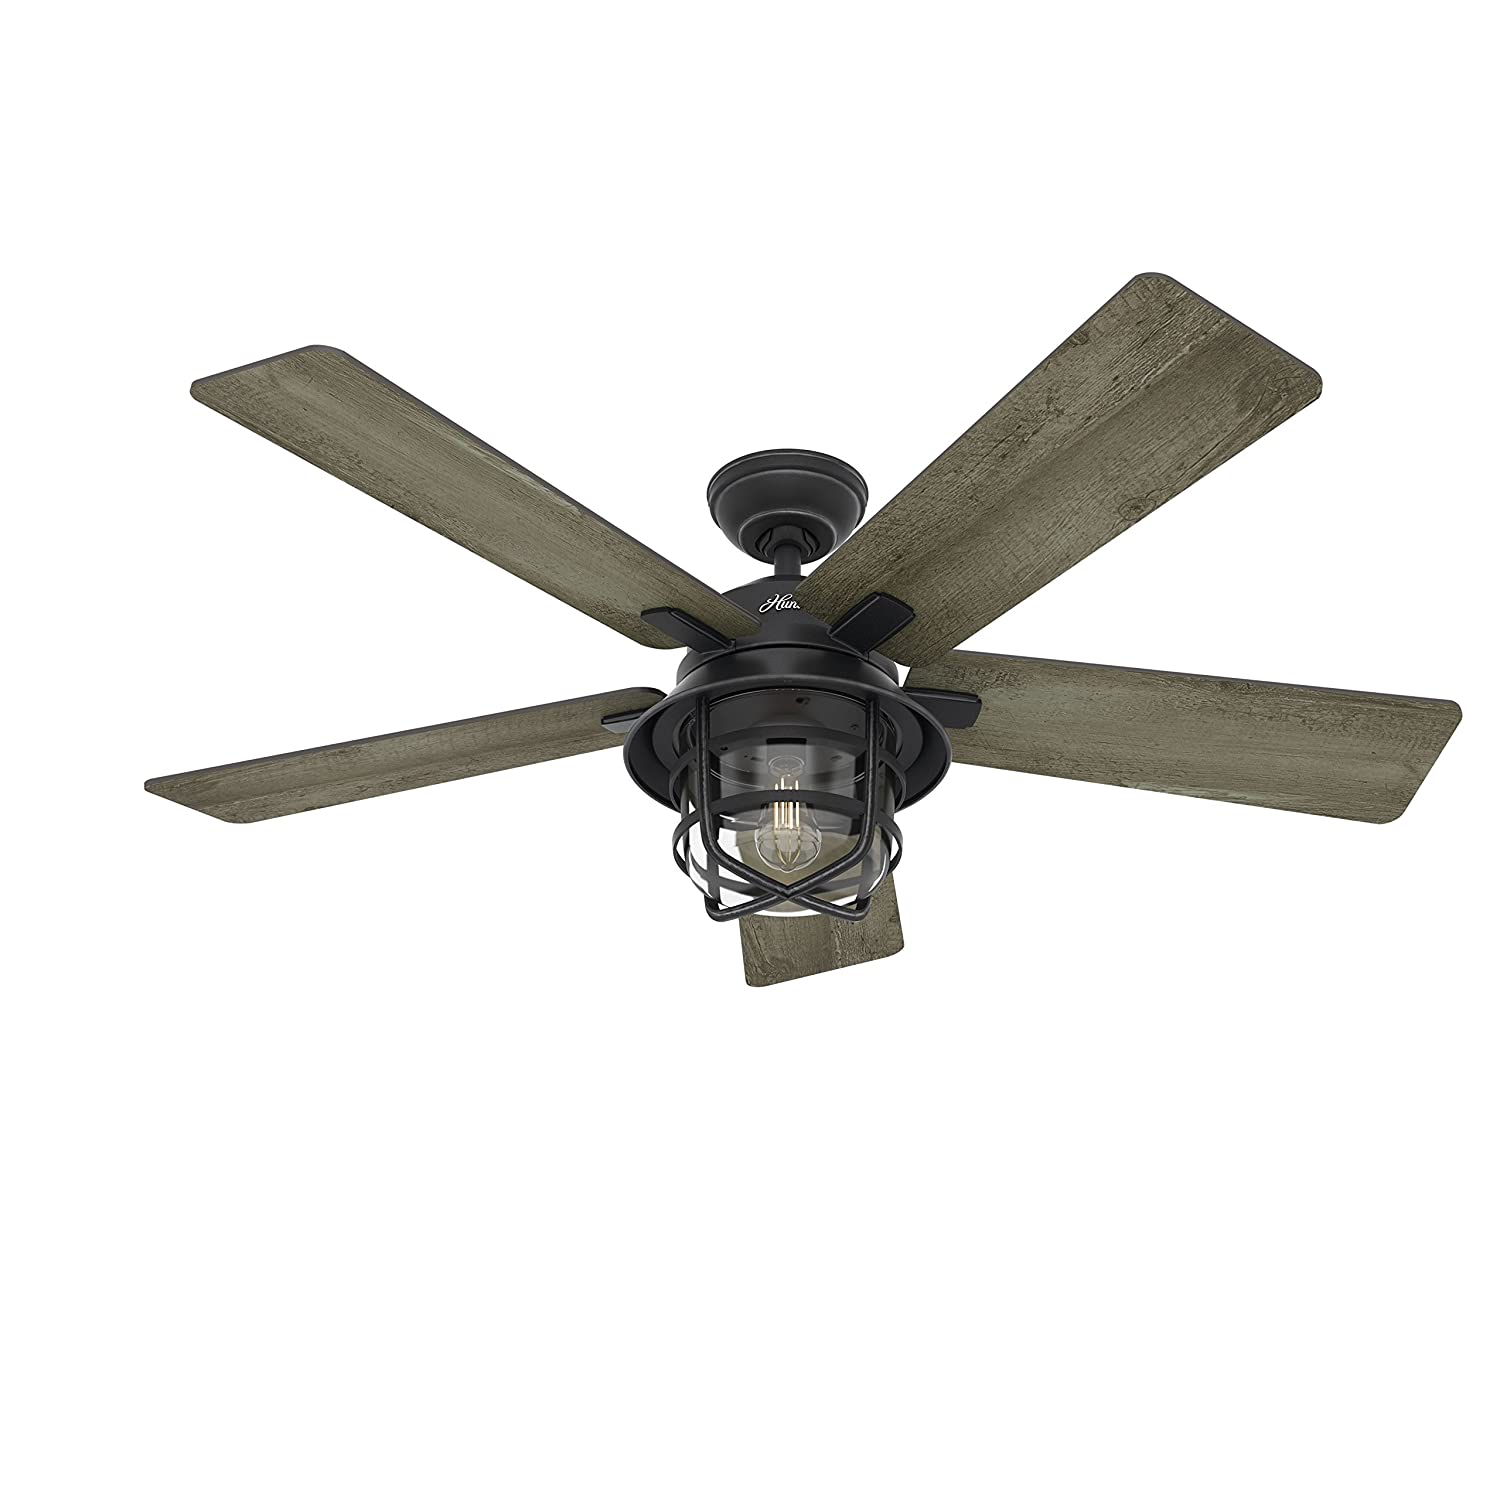 Best Outdoor Ceiling Fans The Top 10 Options To Help Cool